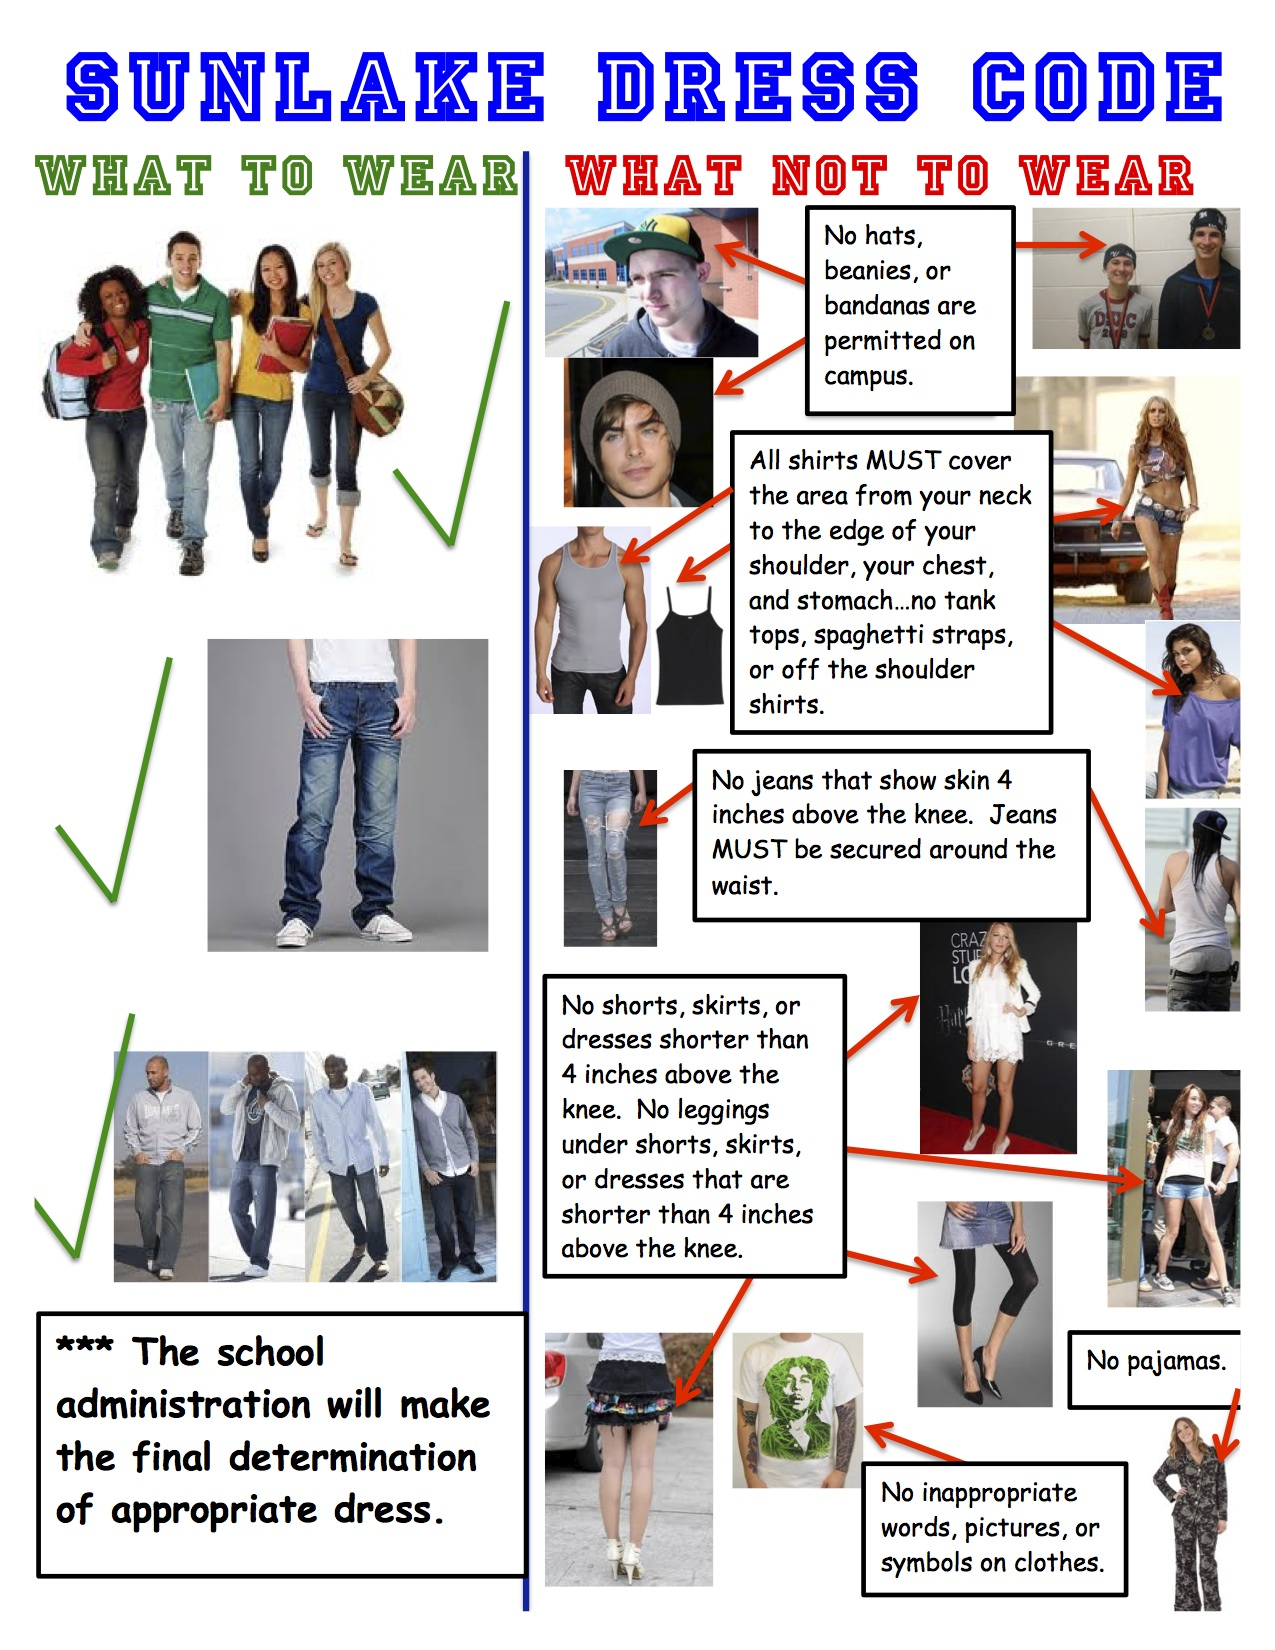 essay on dress code in high schools School dress code policy essay  school uniforms the answer to free speech issues at high schools writing high school dress codes is not one of them.